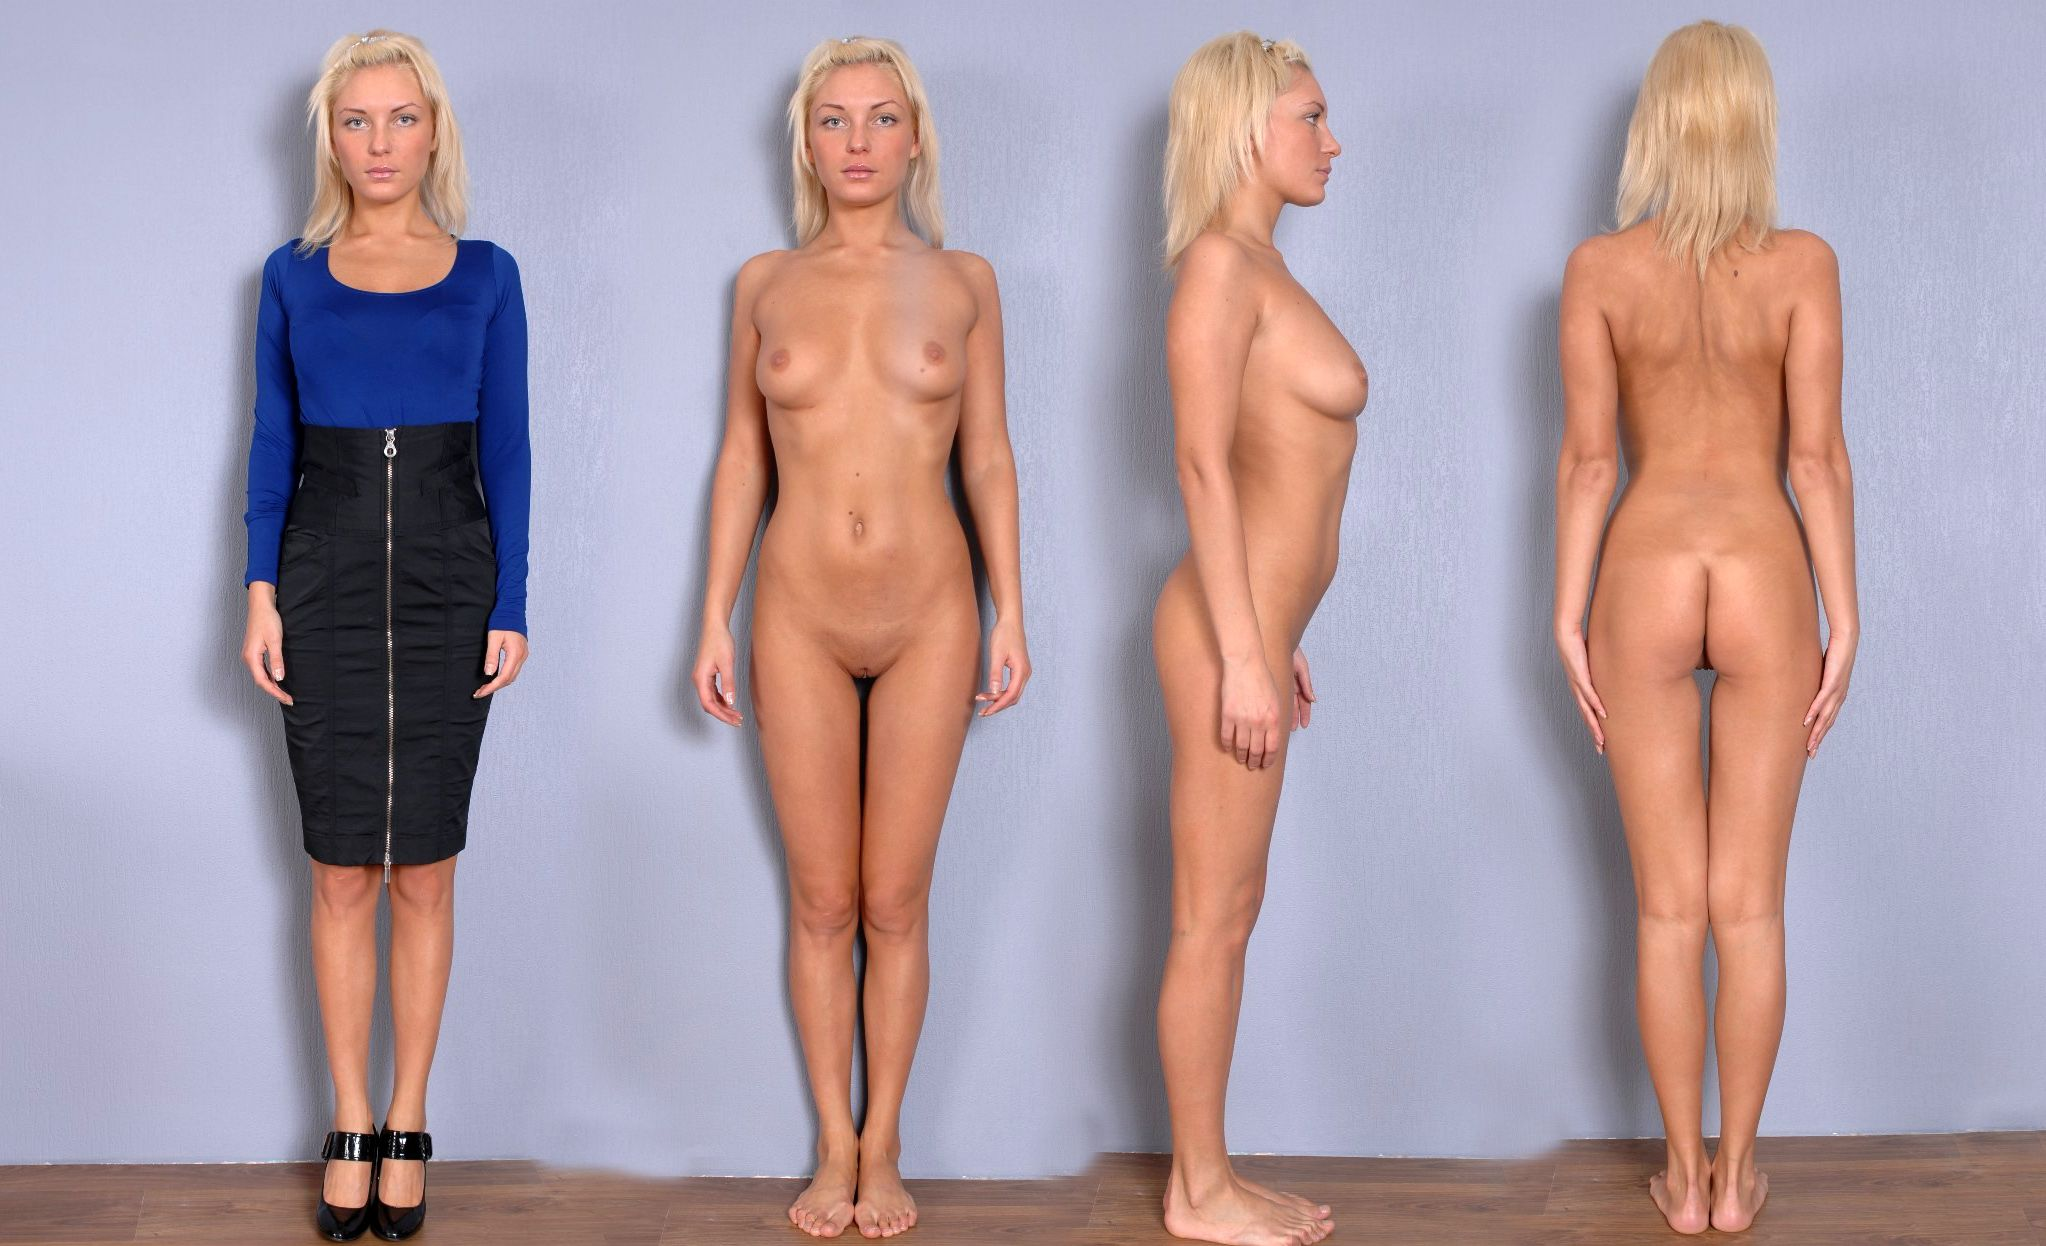 clothed-unclothed-picture